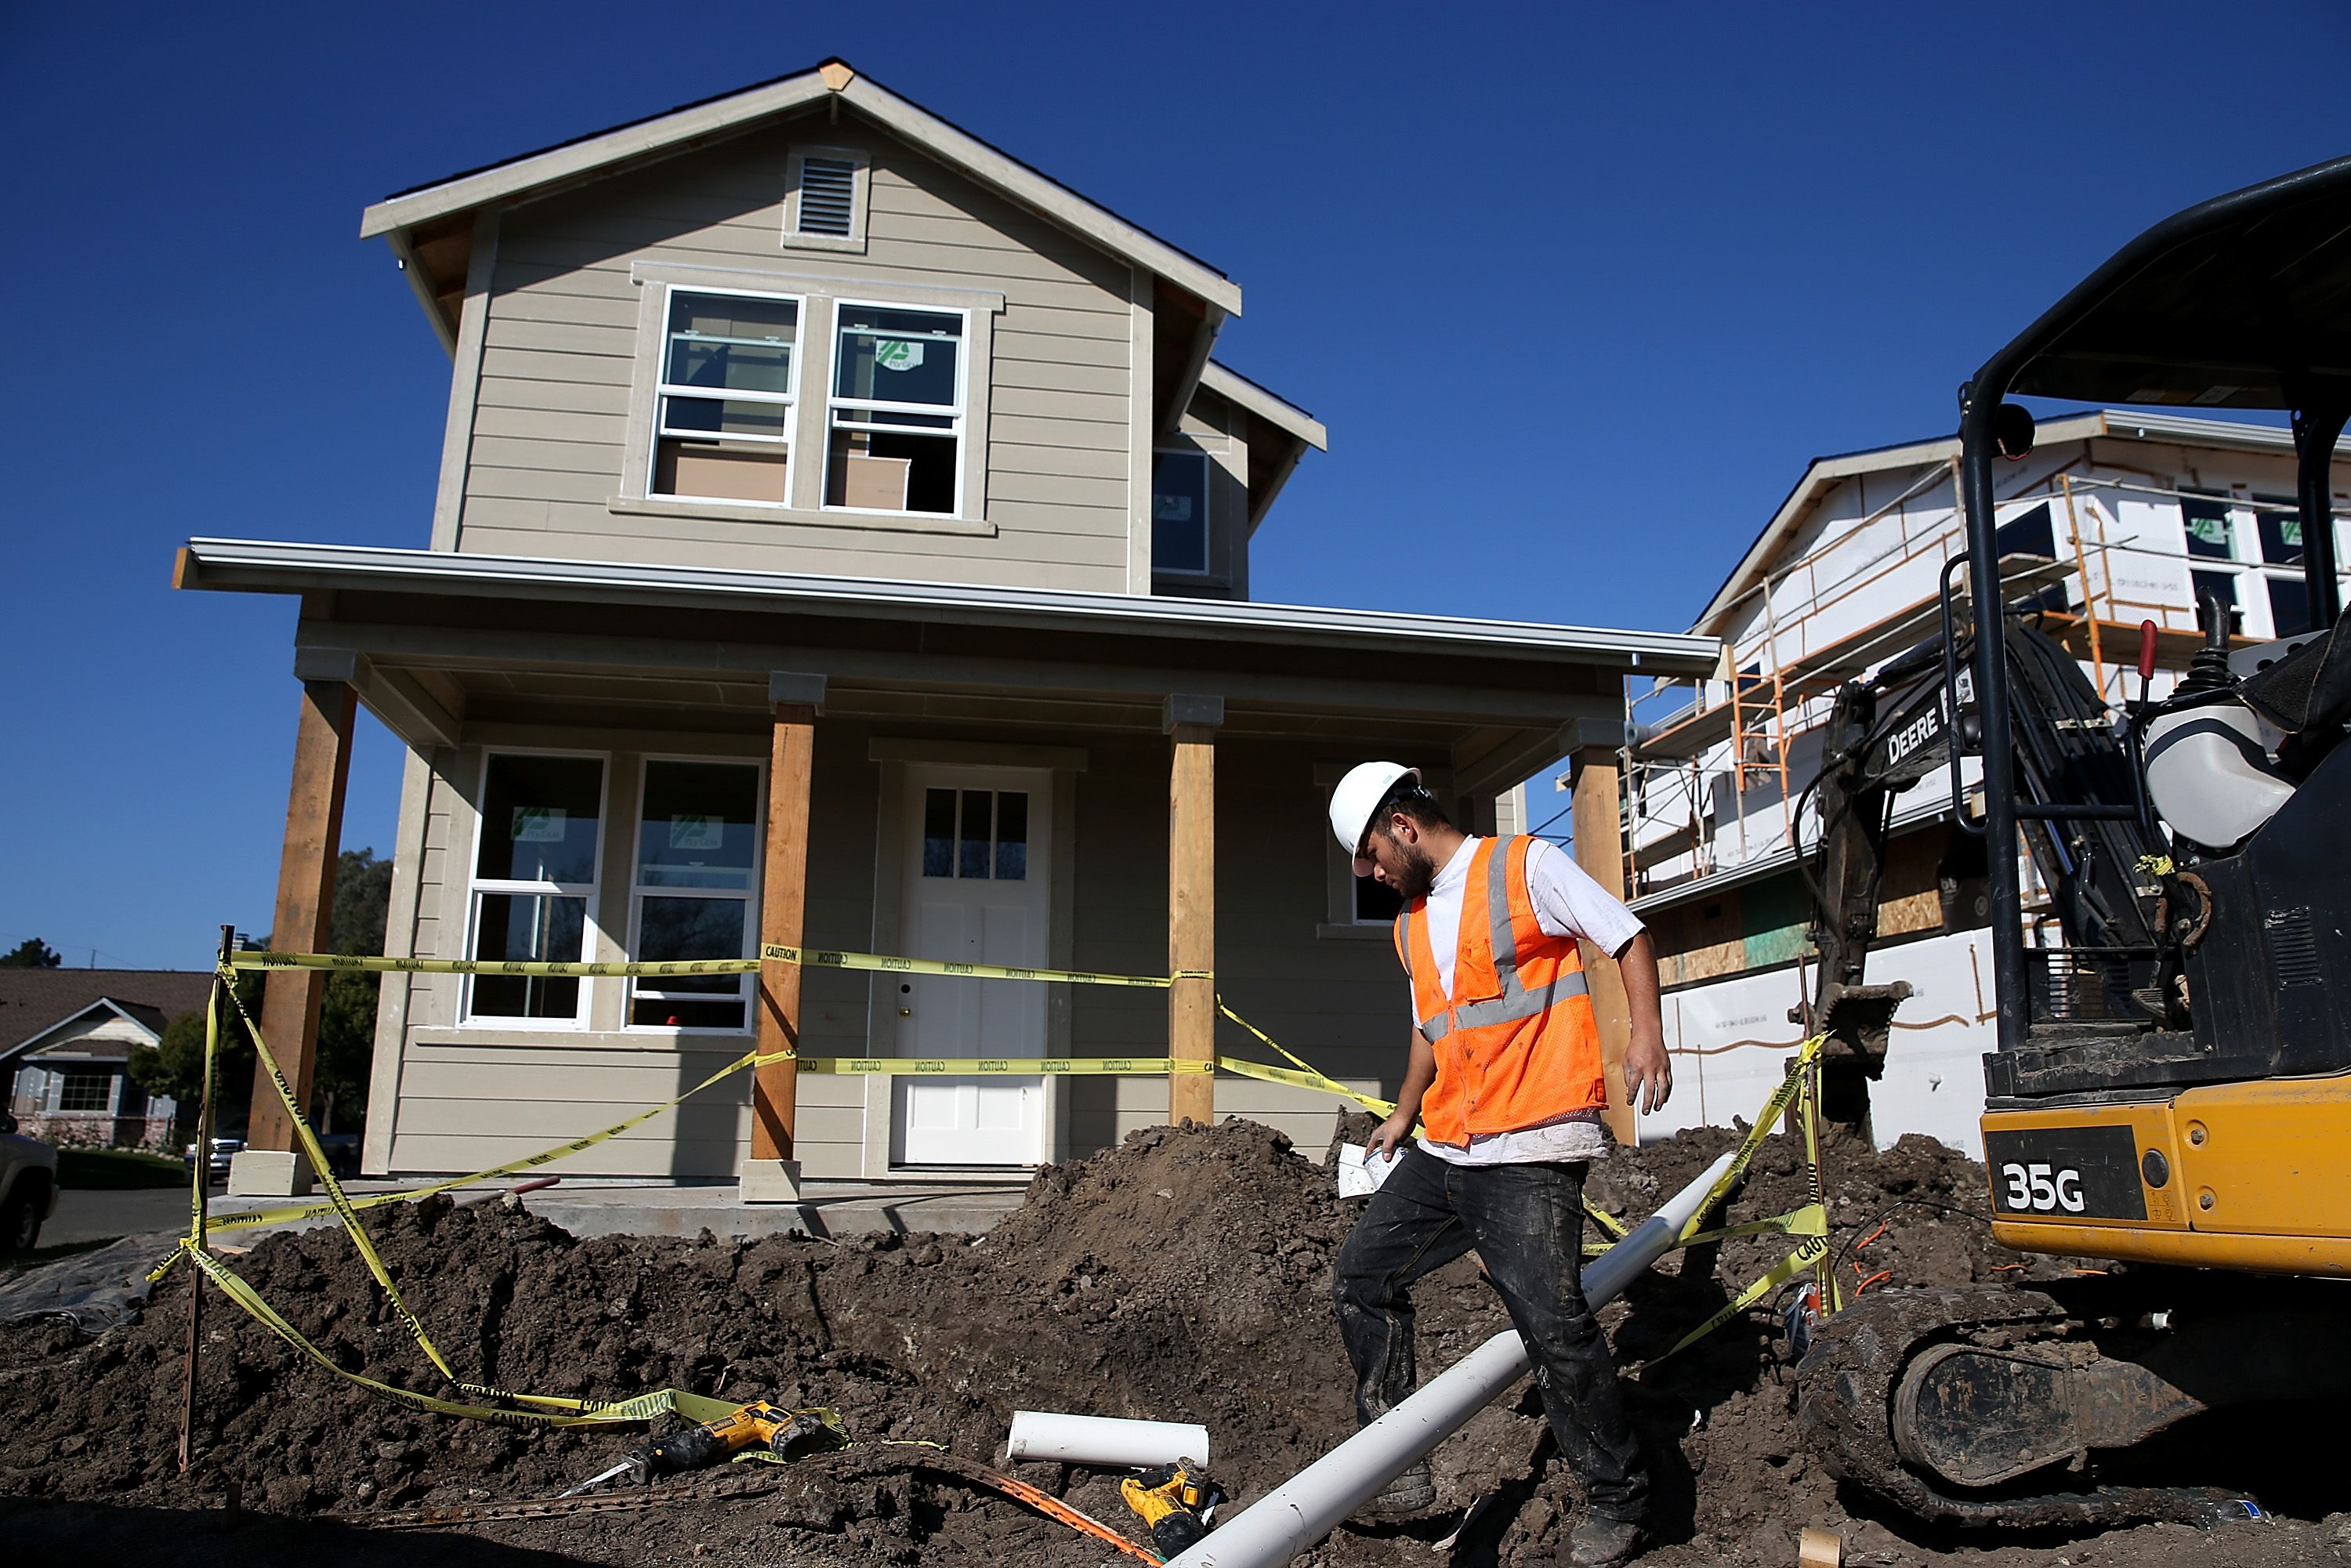 A worker prepares to move a piece of pipe into place as he builds a new home on January 21, 2015 in Petaluma, California.